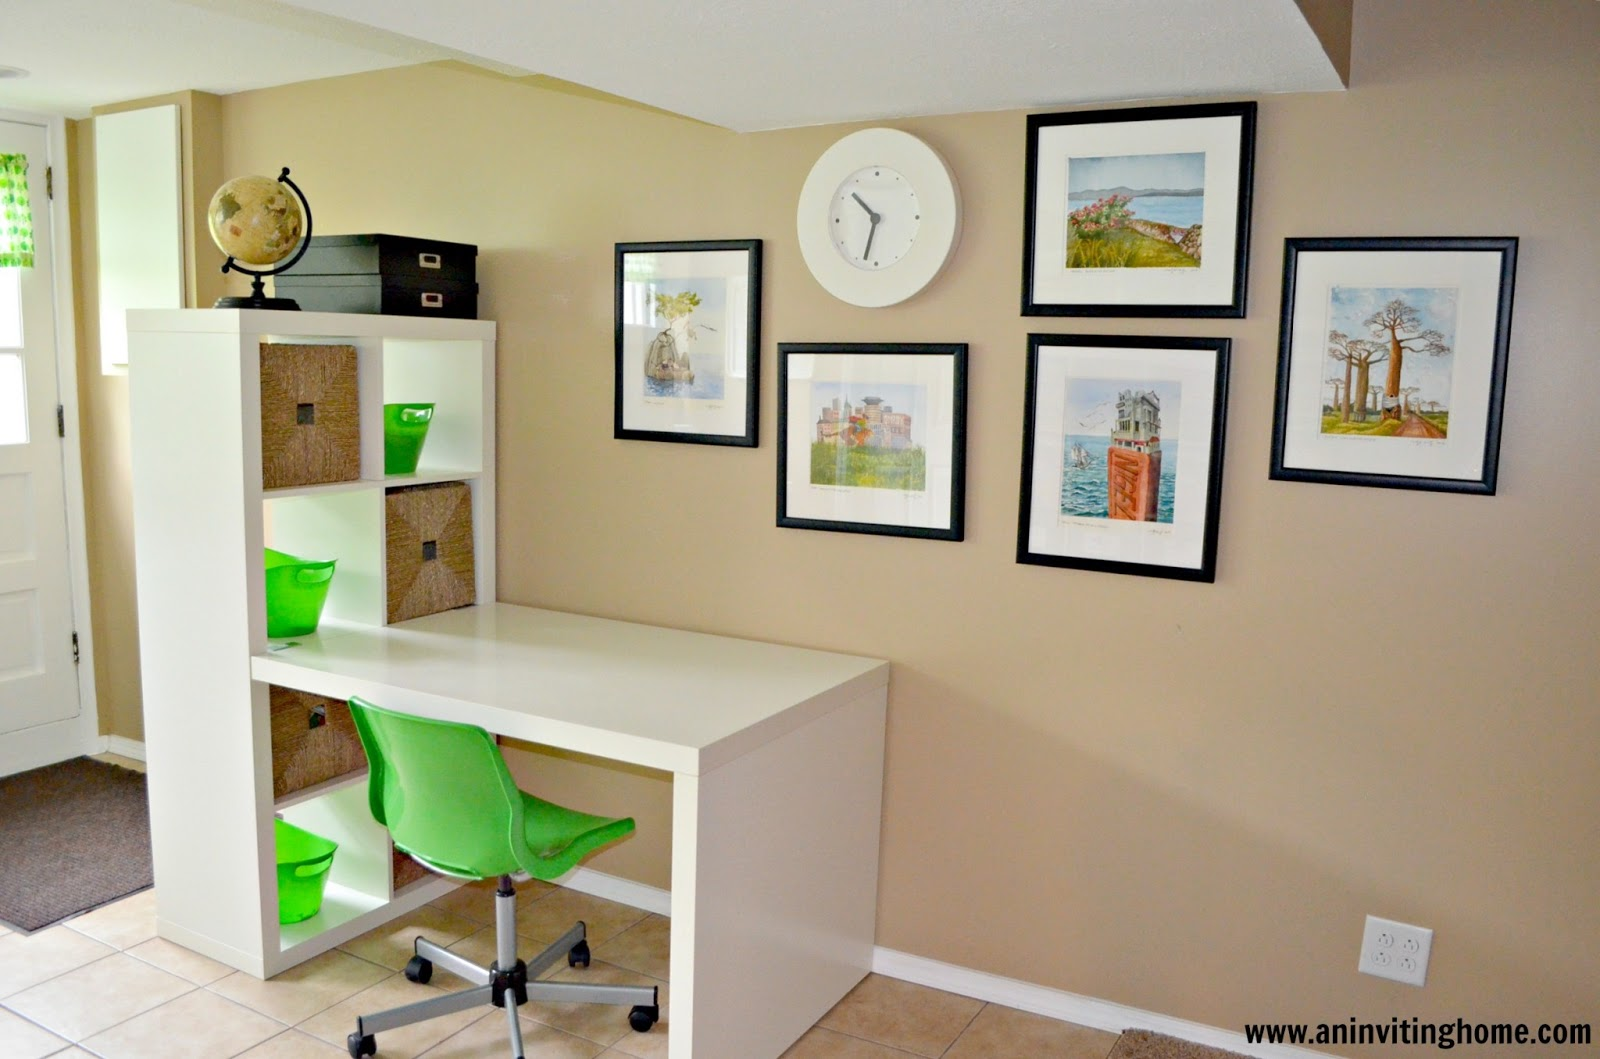 Kids Room Wall Lamp An Inviting Home 6 Tips To Organizing A Kid 39s Craft Space